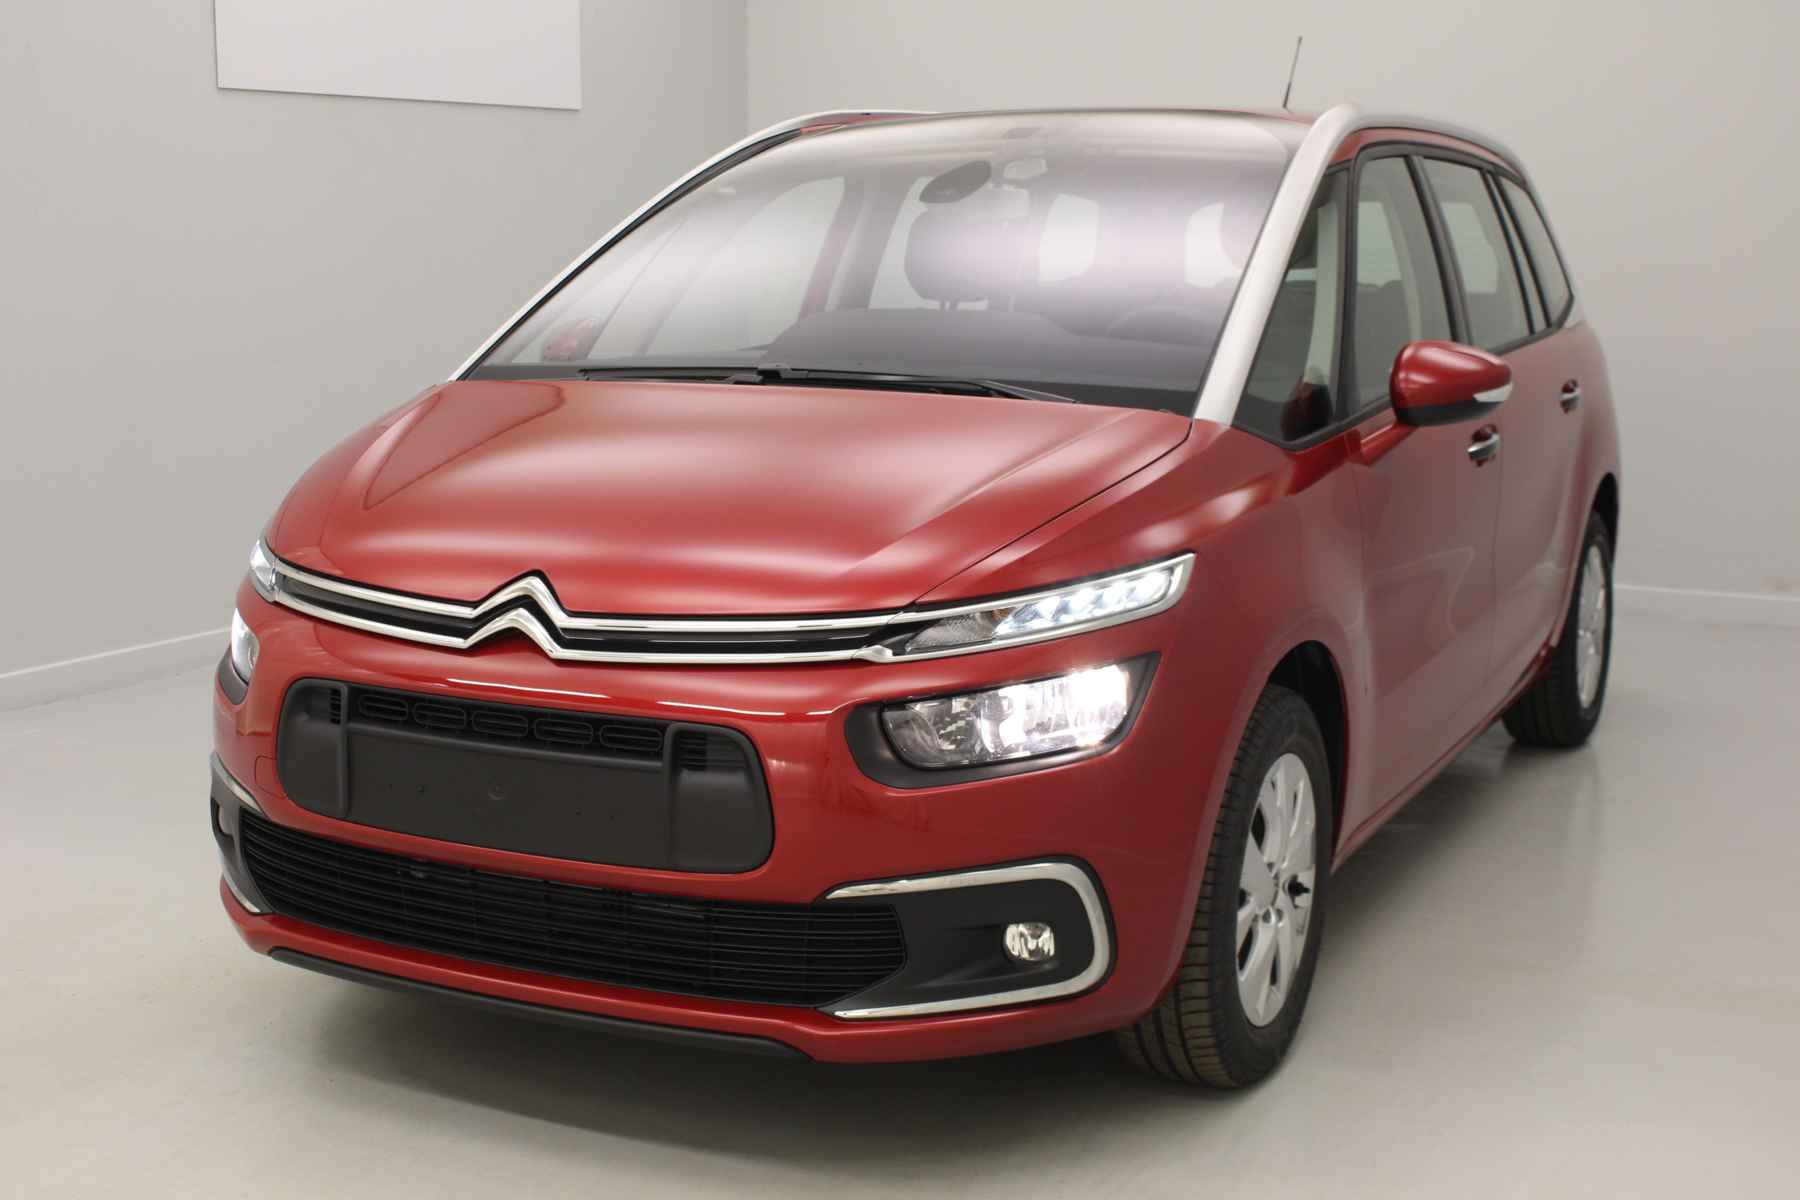 CITROEN Grand C4 Picasso BlueHDi 120 S&S Feel Rouge Rubi + Accès démarrage mains libres + Alarme avec options